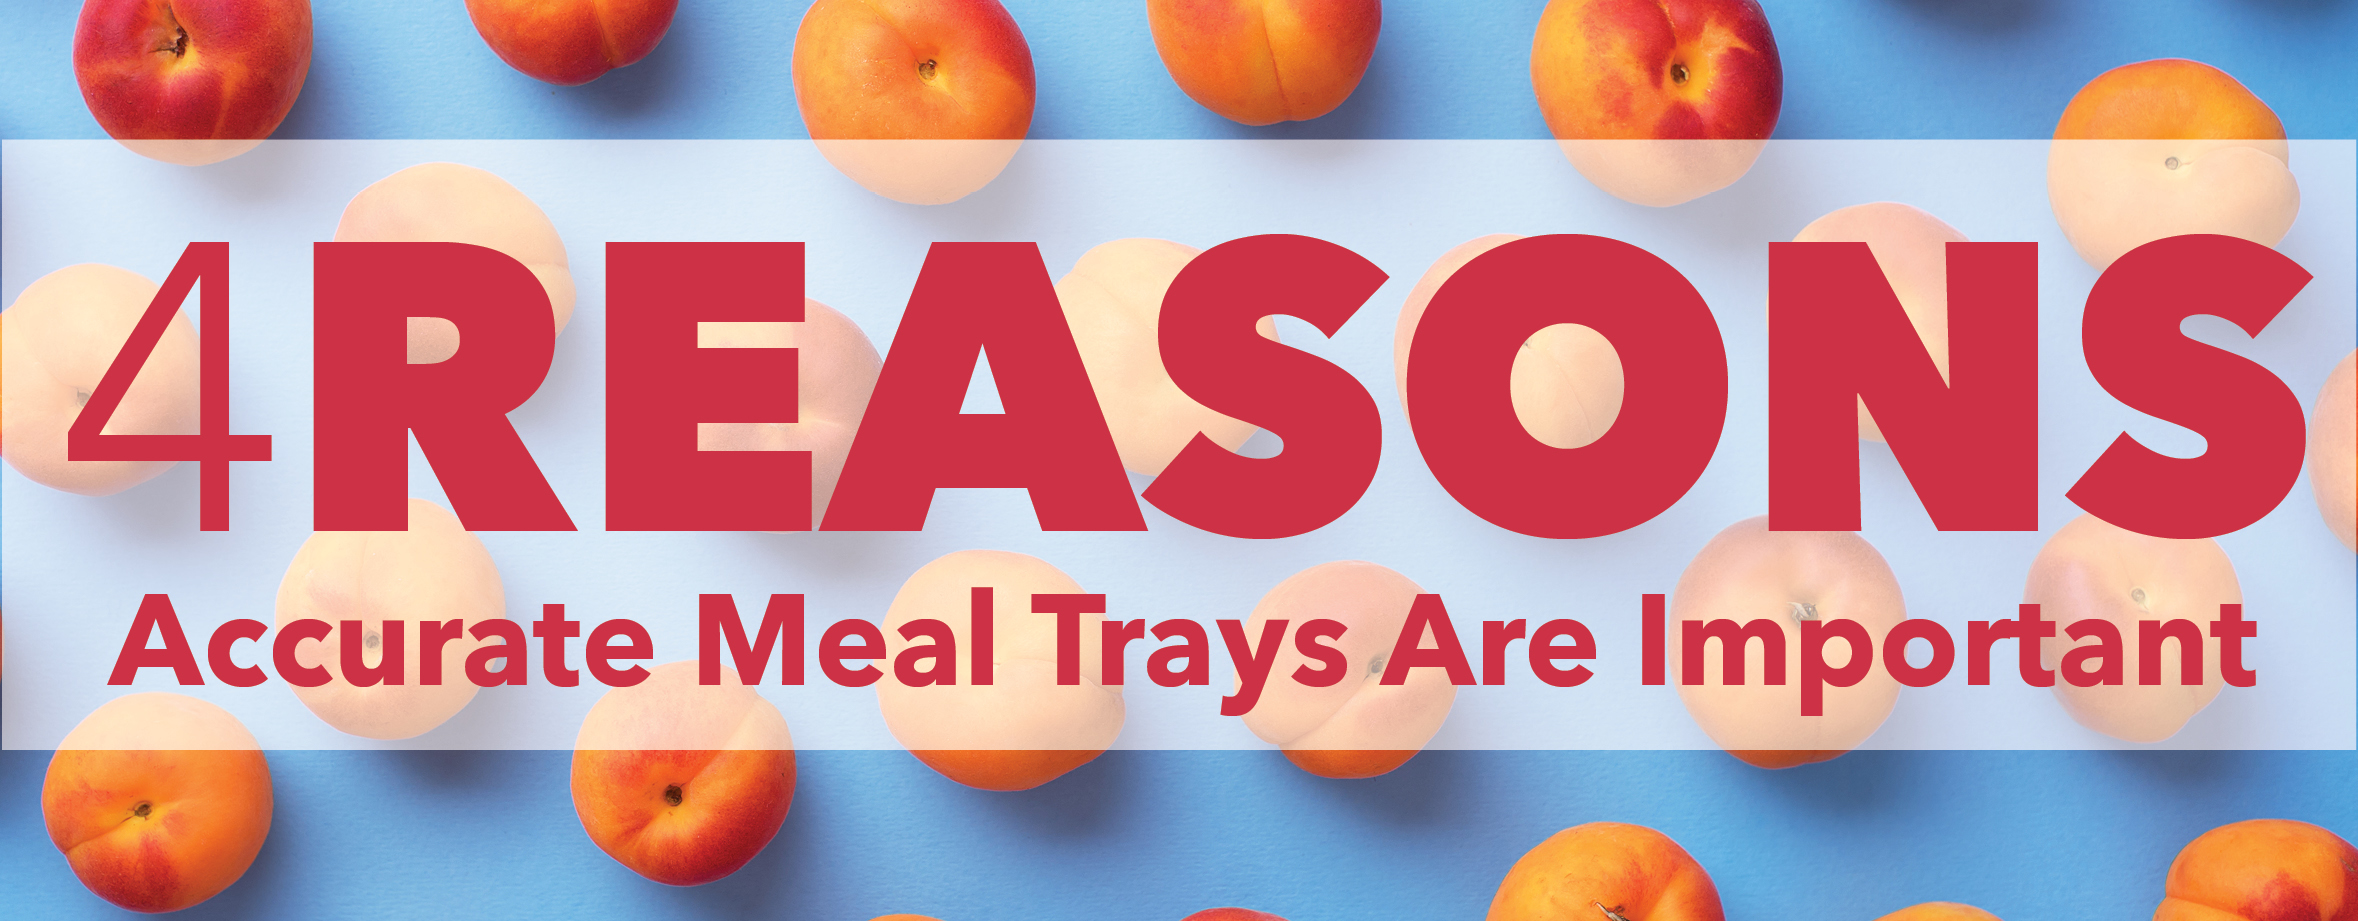 4 Reasons Accurate Meal Trays Matter